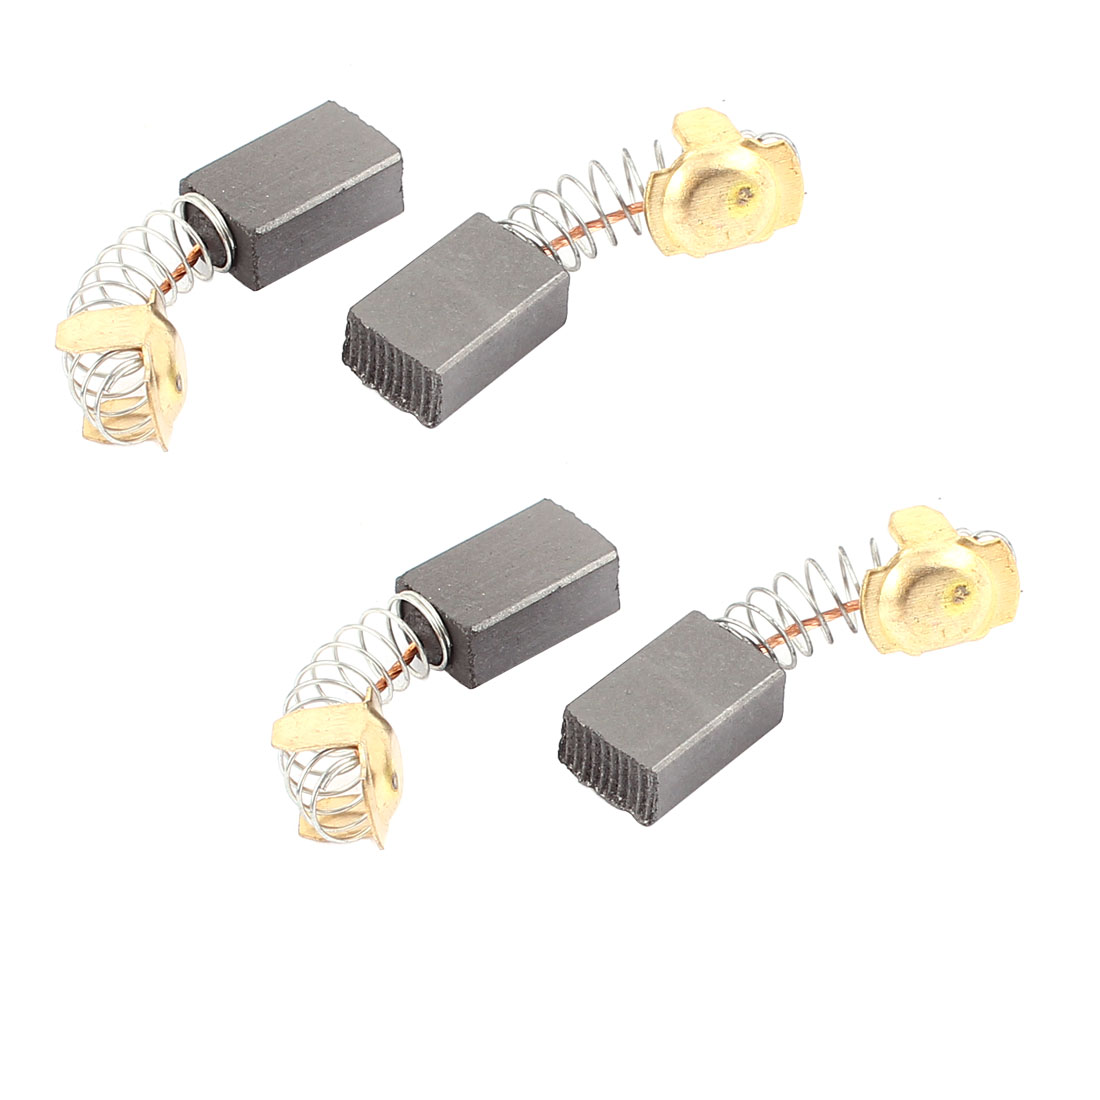 4 Pcs Replacement Electric Motor Carbon Brushes 16mm x 11mm x 7mm for Motors